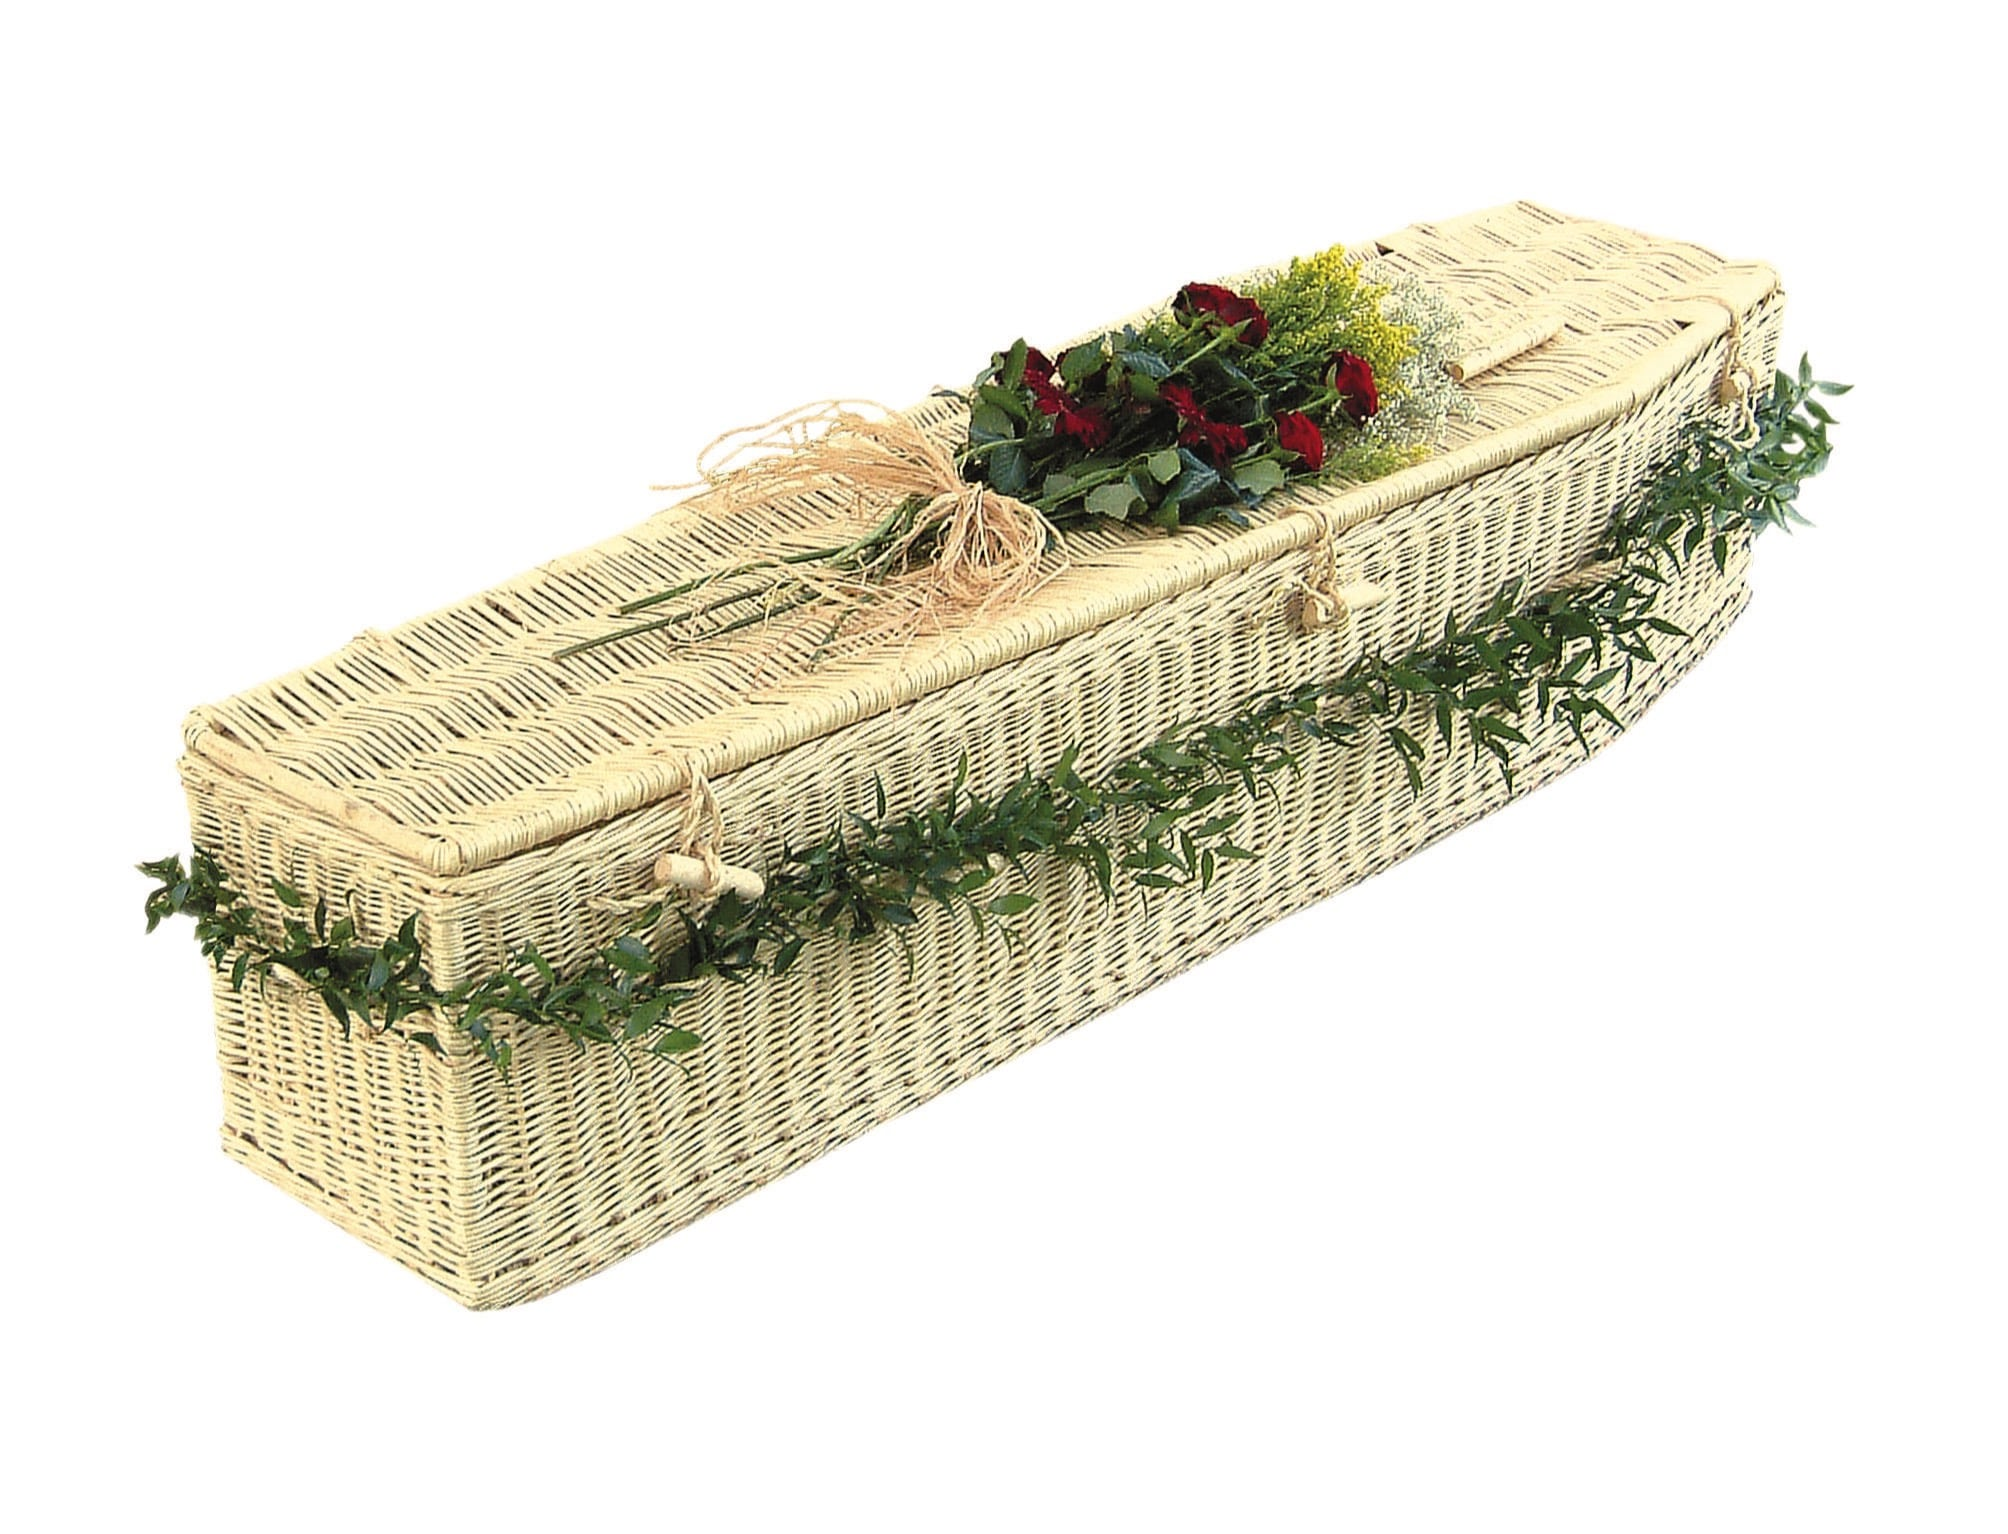 Light coloured wicker coffin with dark red flowers on top